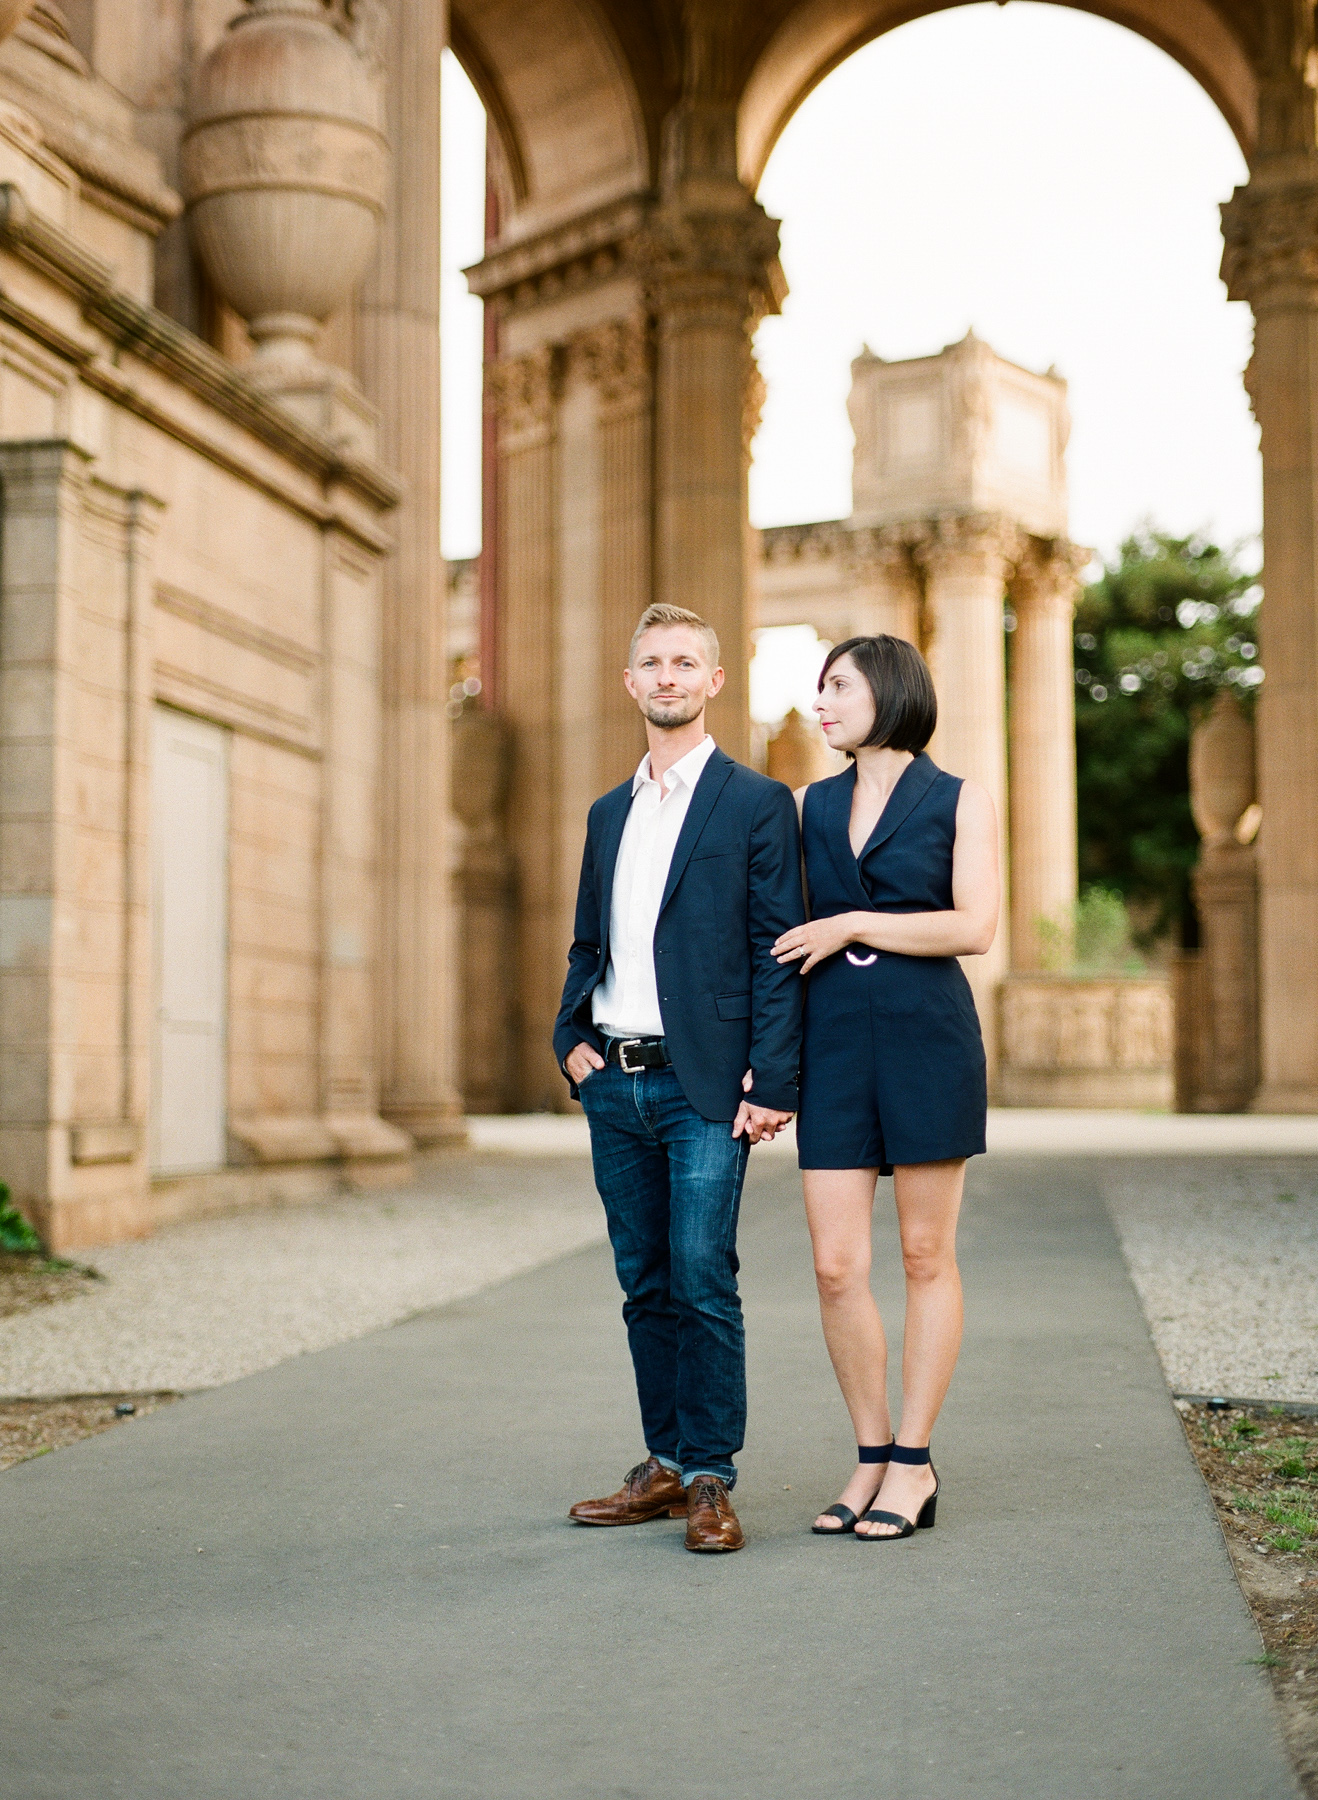 San Francisco Engagement Session Film Photographer 11.jpg